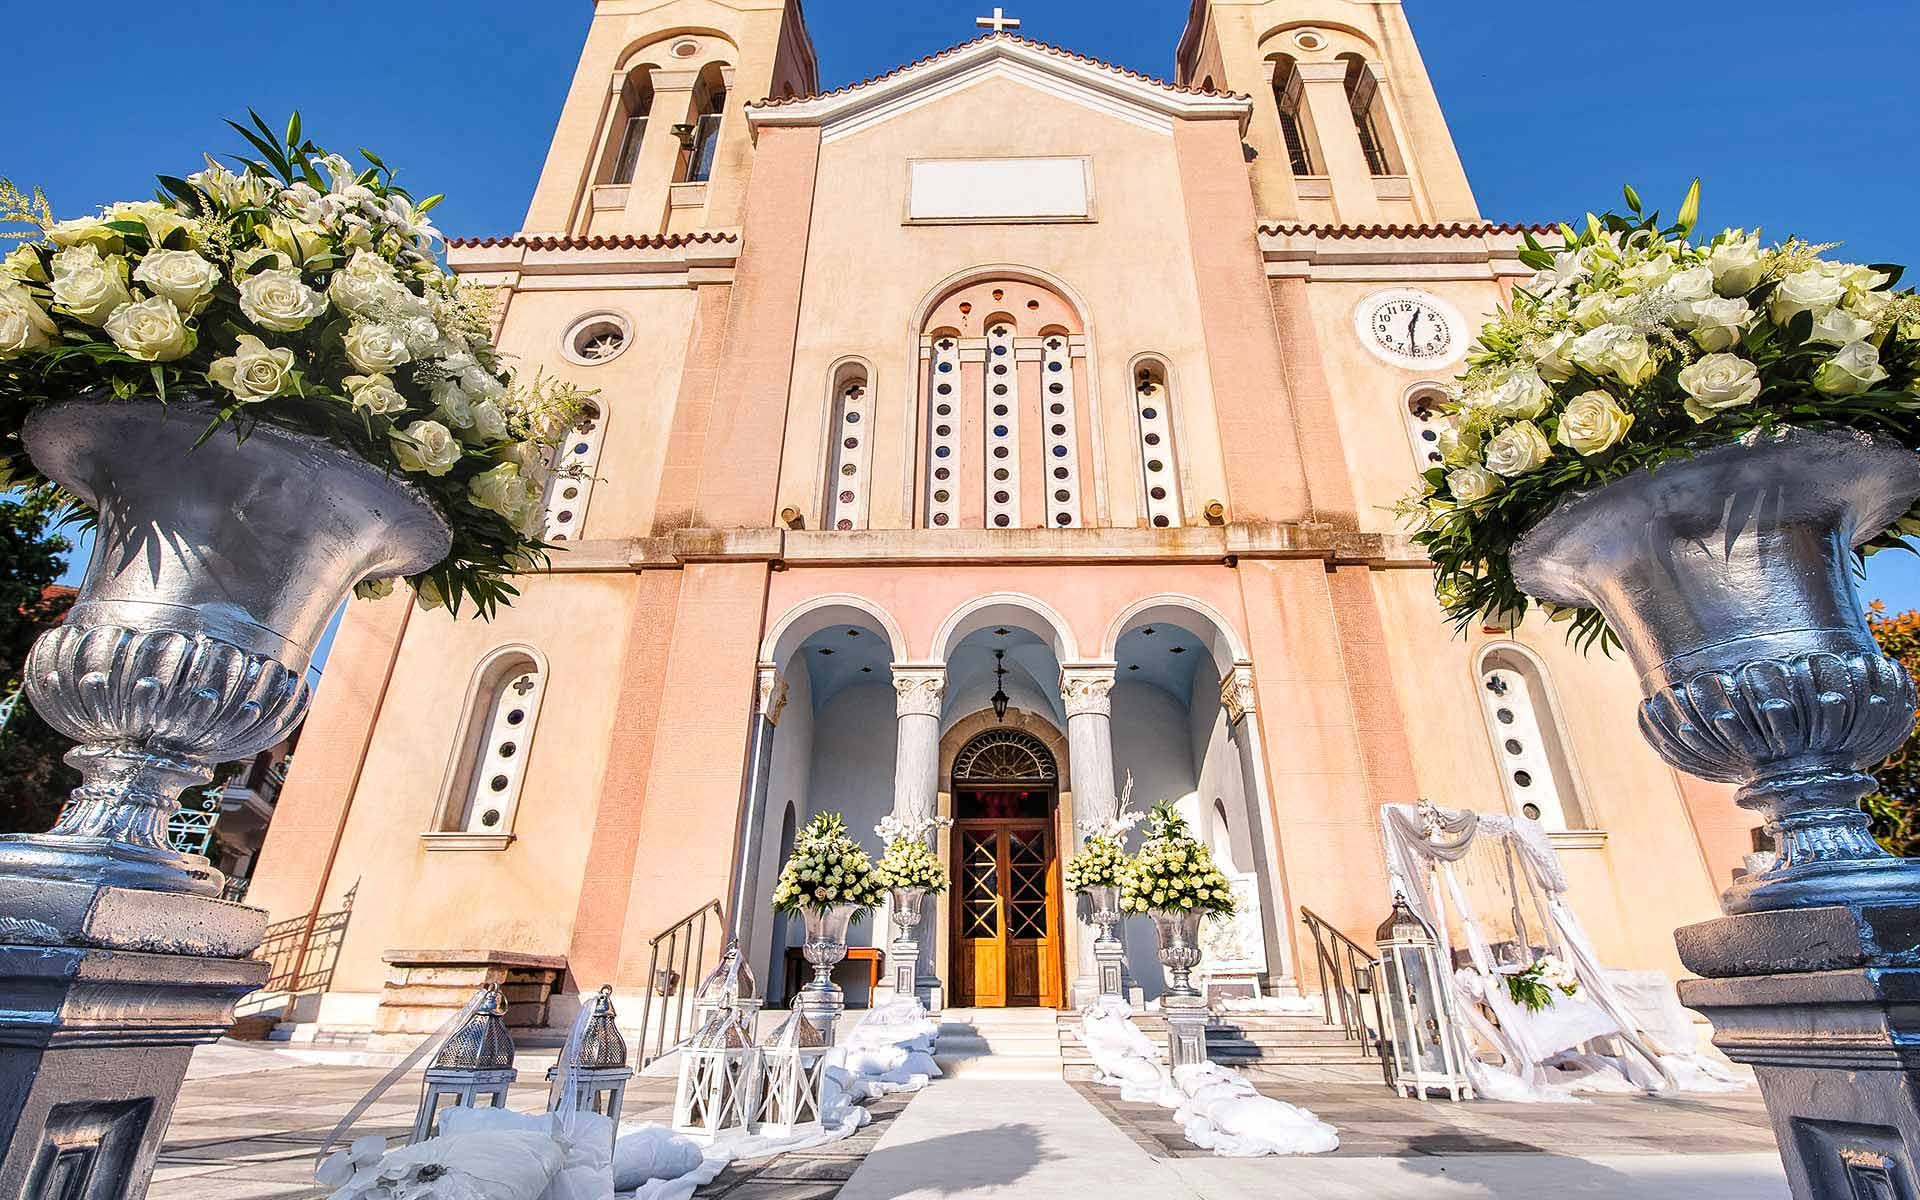 Luxurious-wedding-church-decoration-with-silver-urns-and-white-flowers-by-Diamond-Events